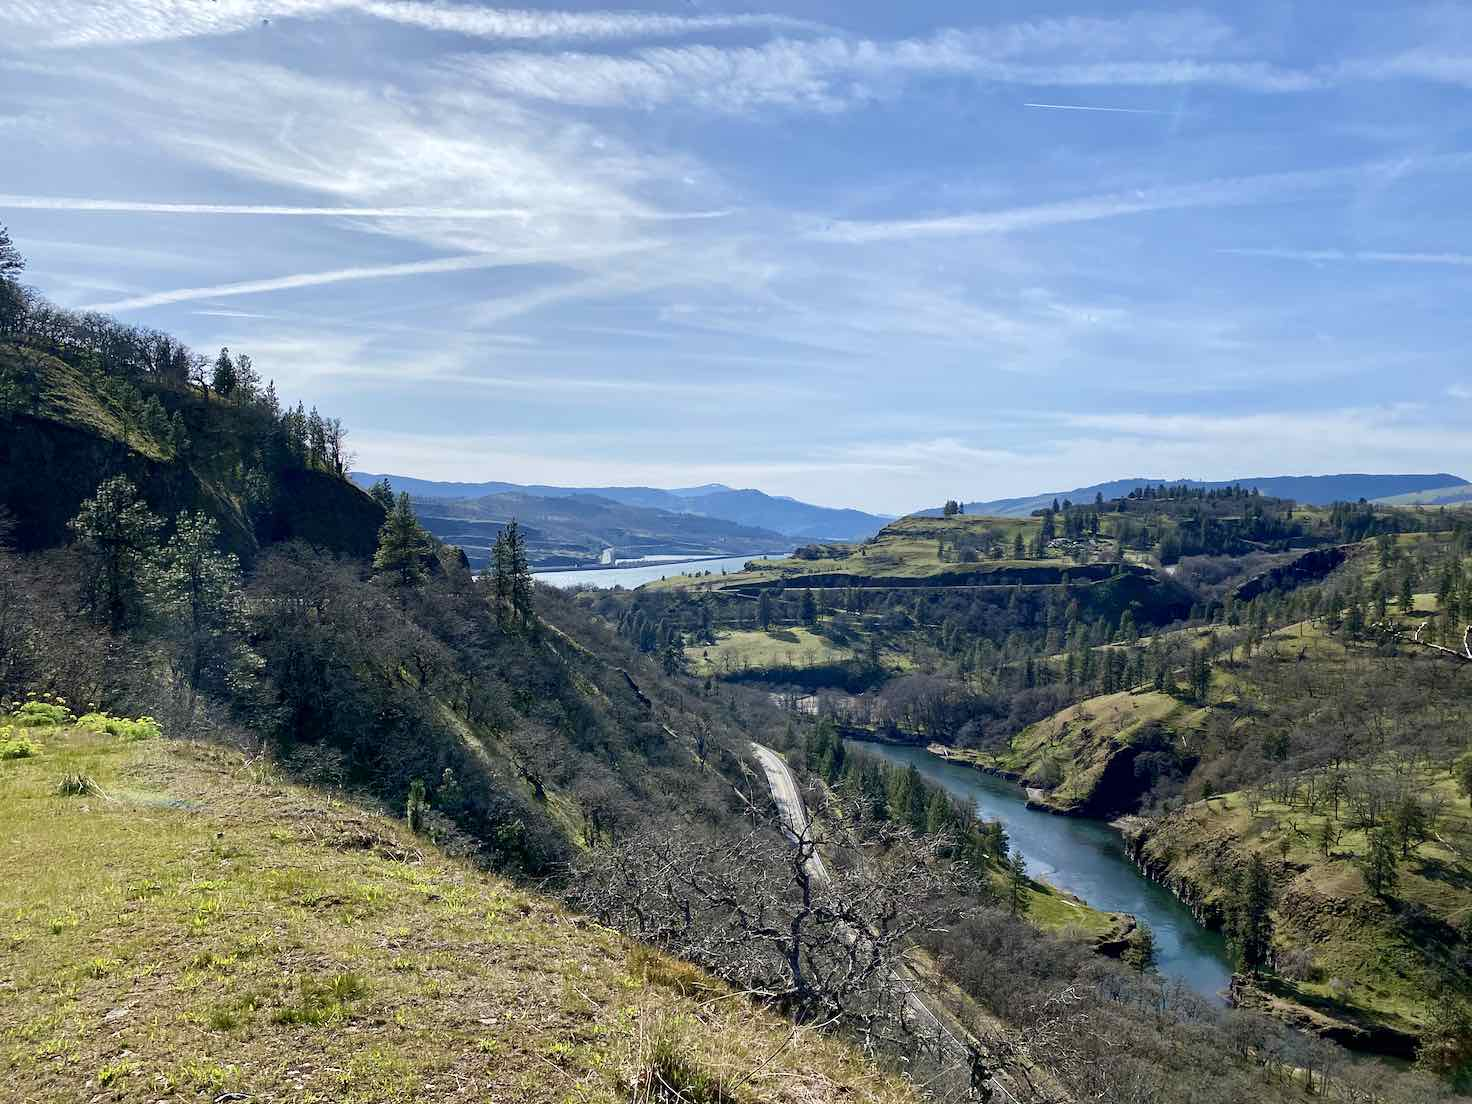 A view of the confluence of the Klickitat and Columbia Rivers.